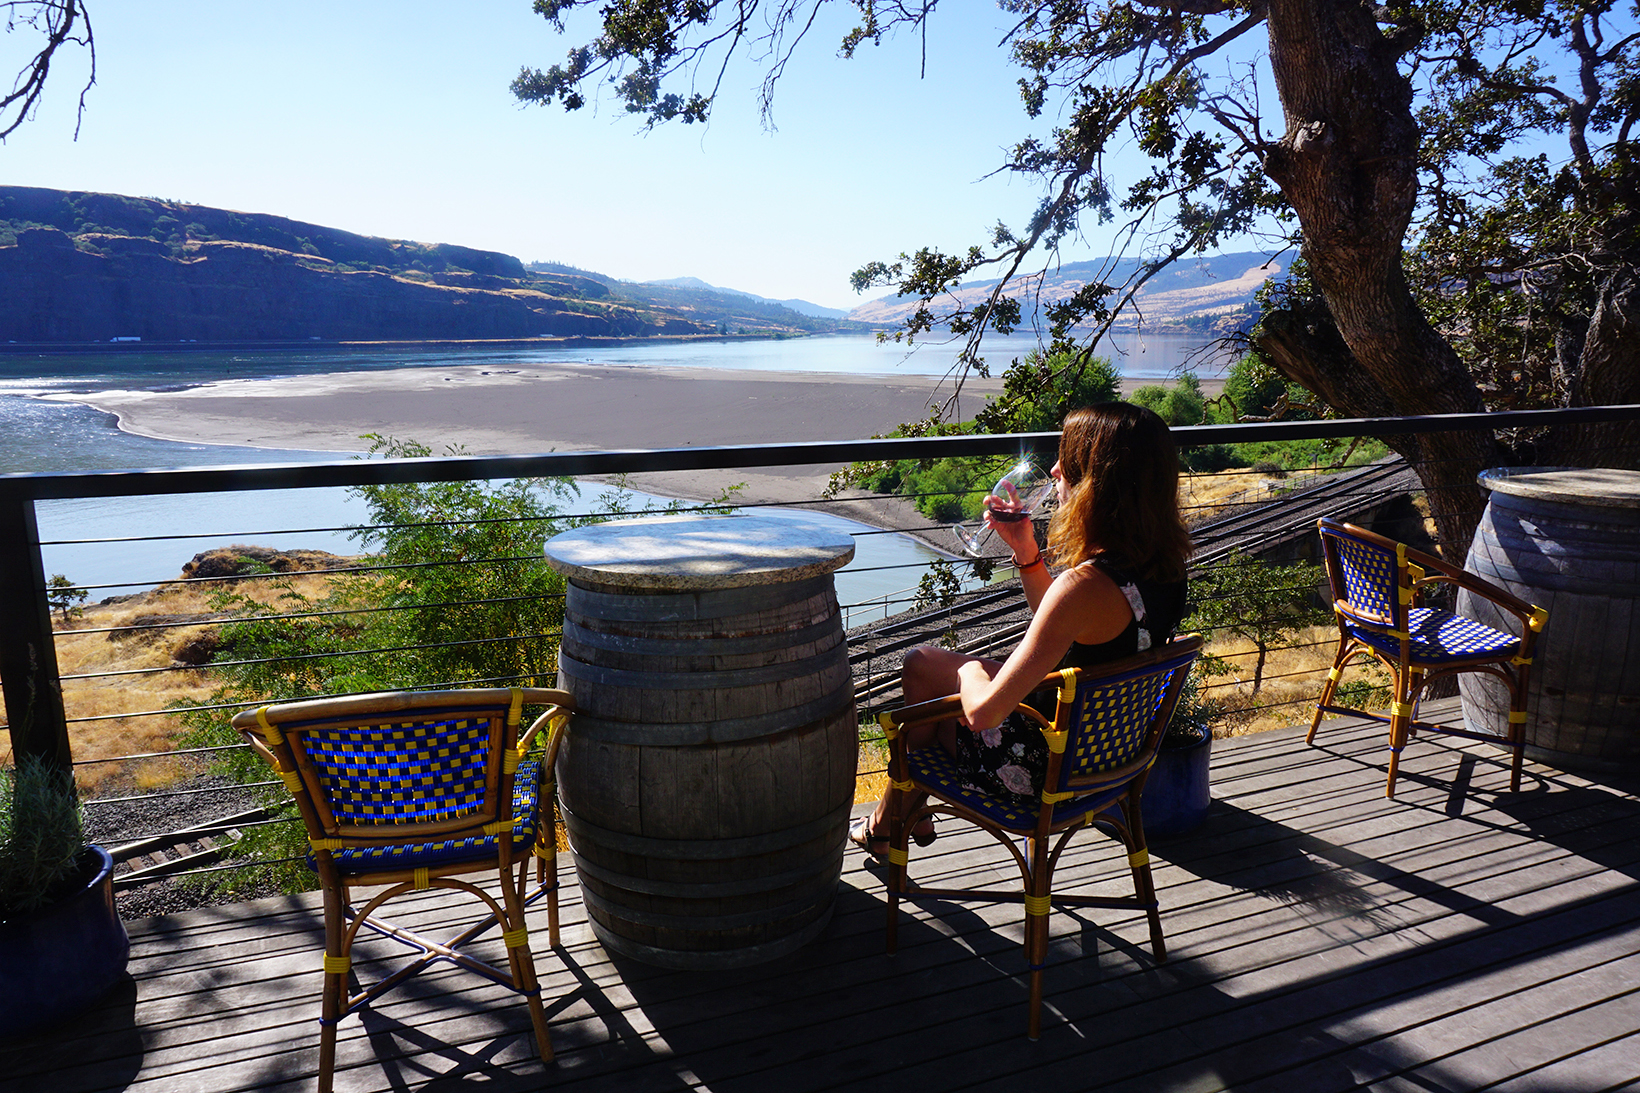 Drinking wine while enjoying a view of the Columbia River Gorge from eastern Washington